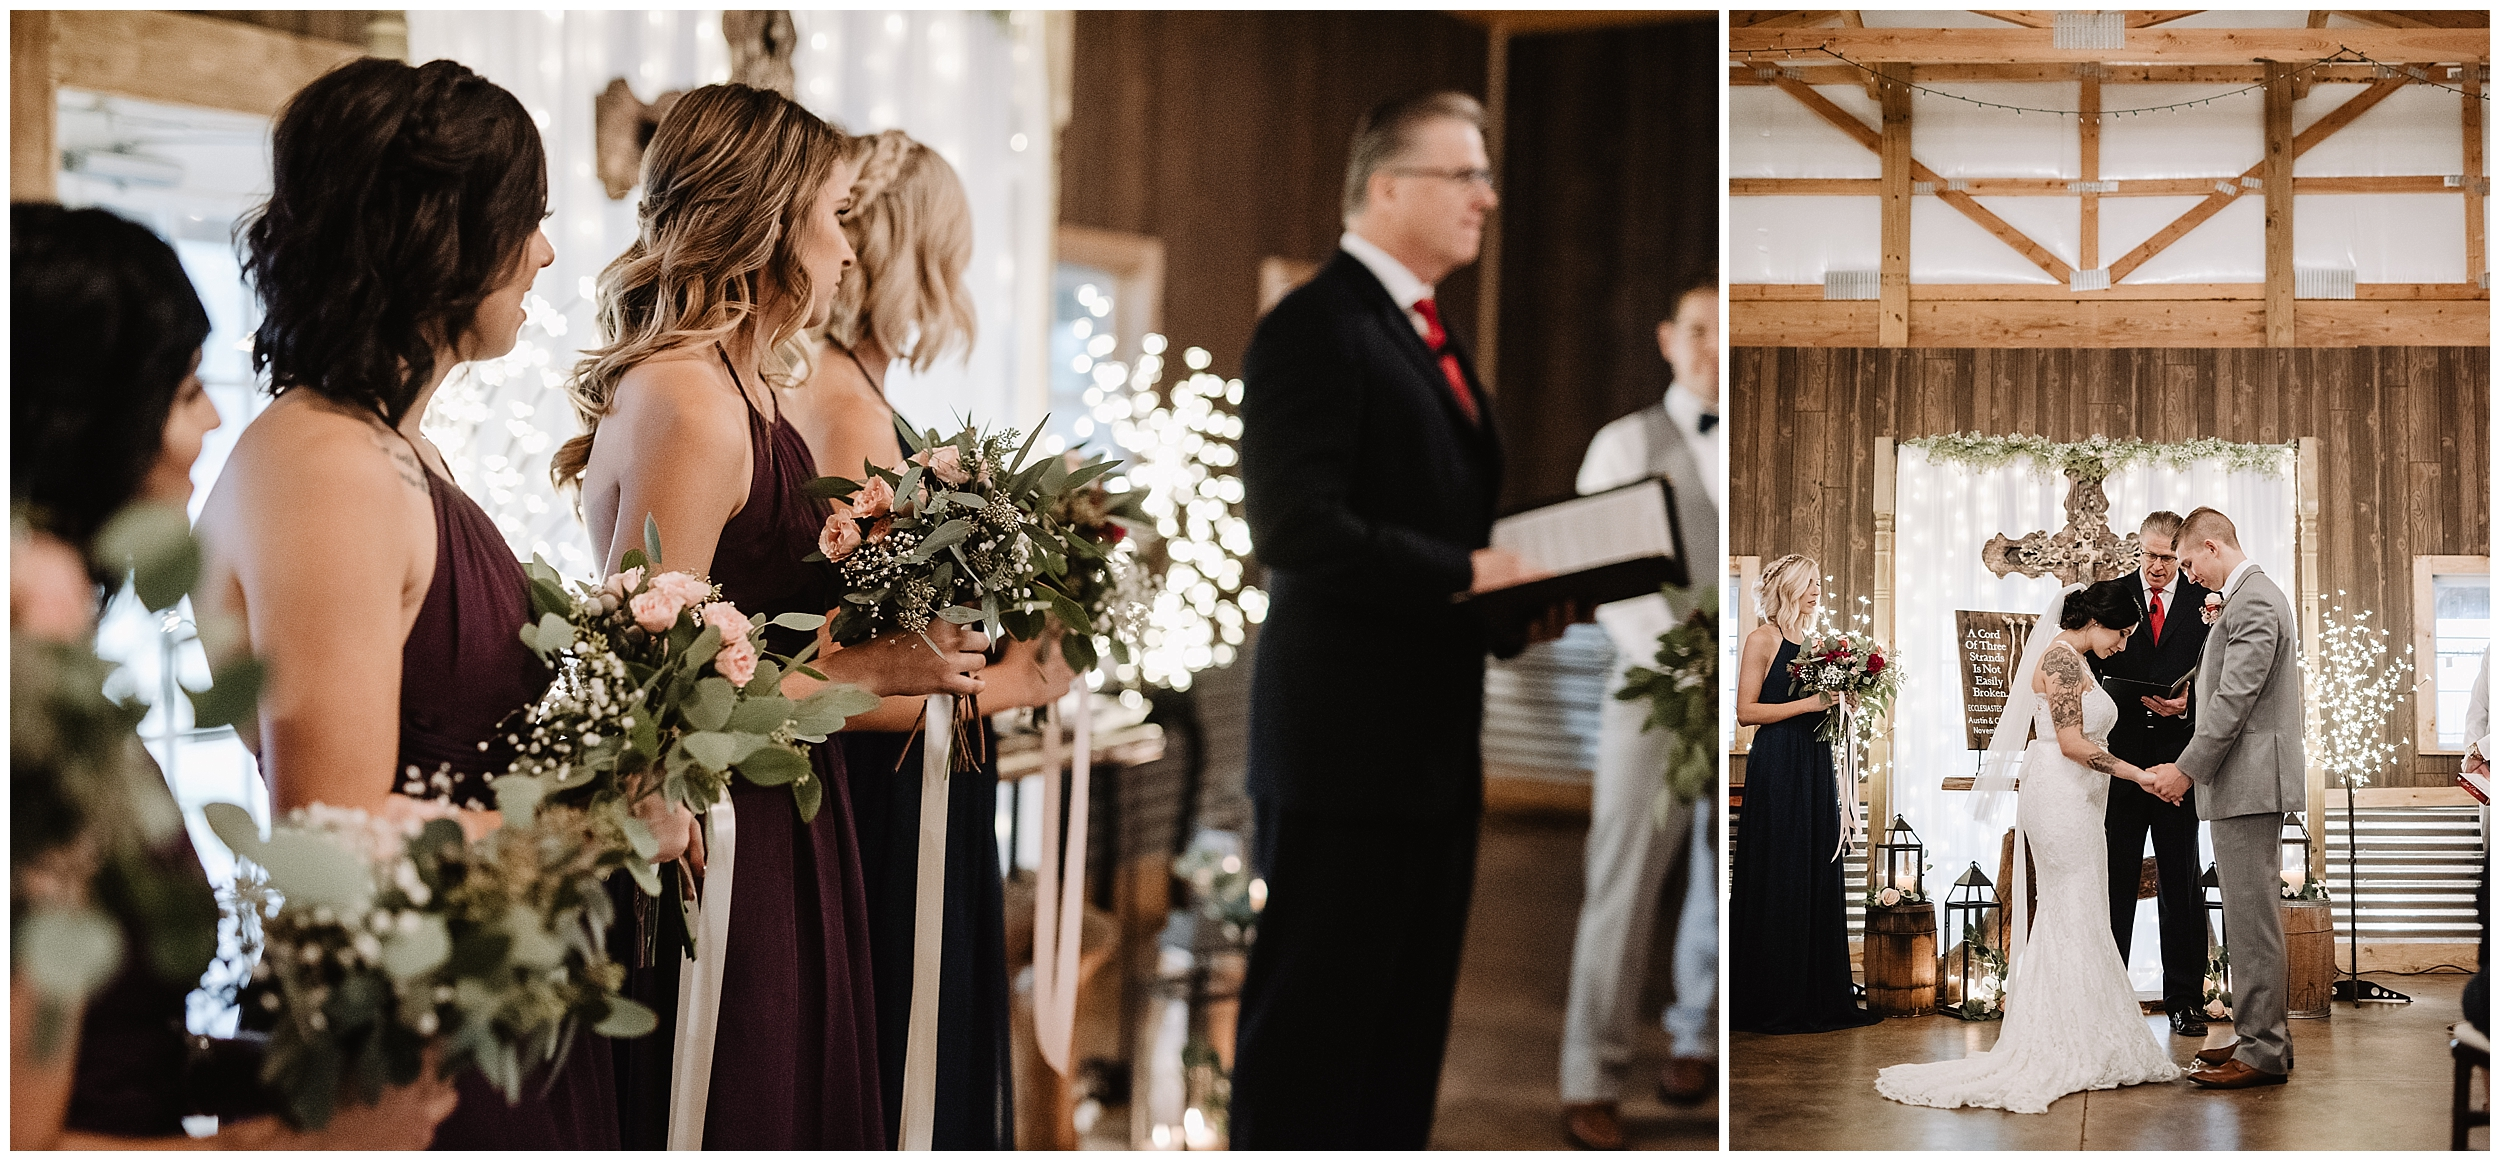 oklahoma wedding photographer ceremony marriage processional  viola kansas rustic timbers ceremony aisle bouquet